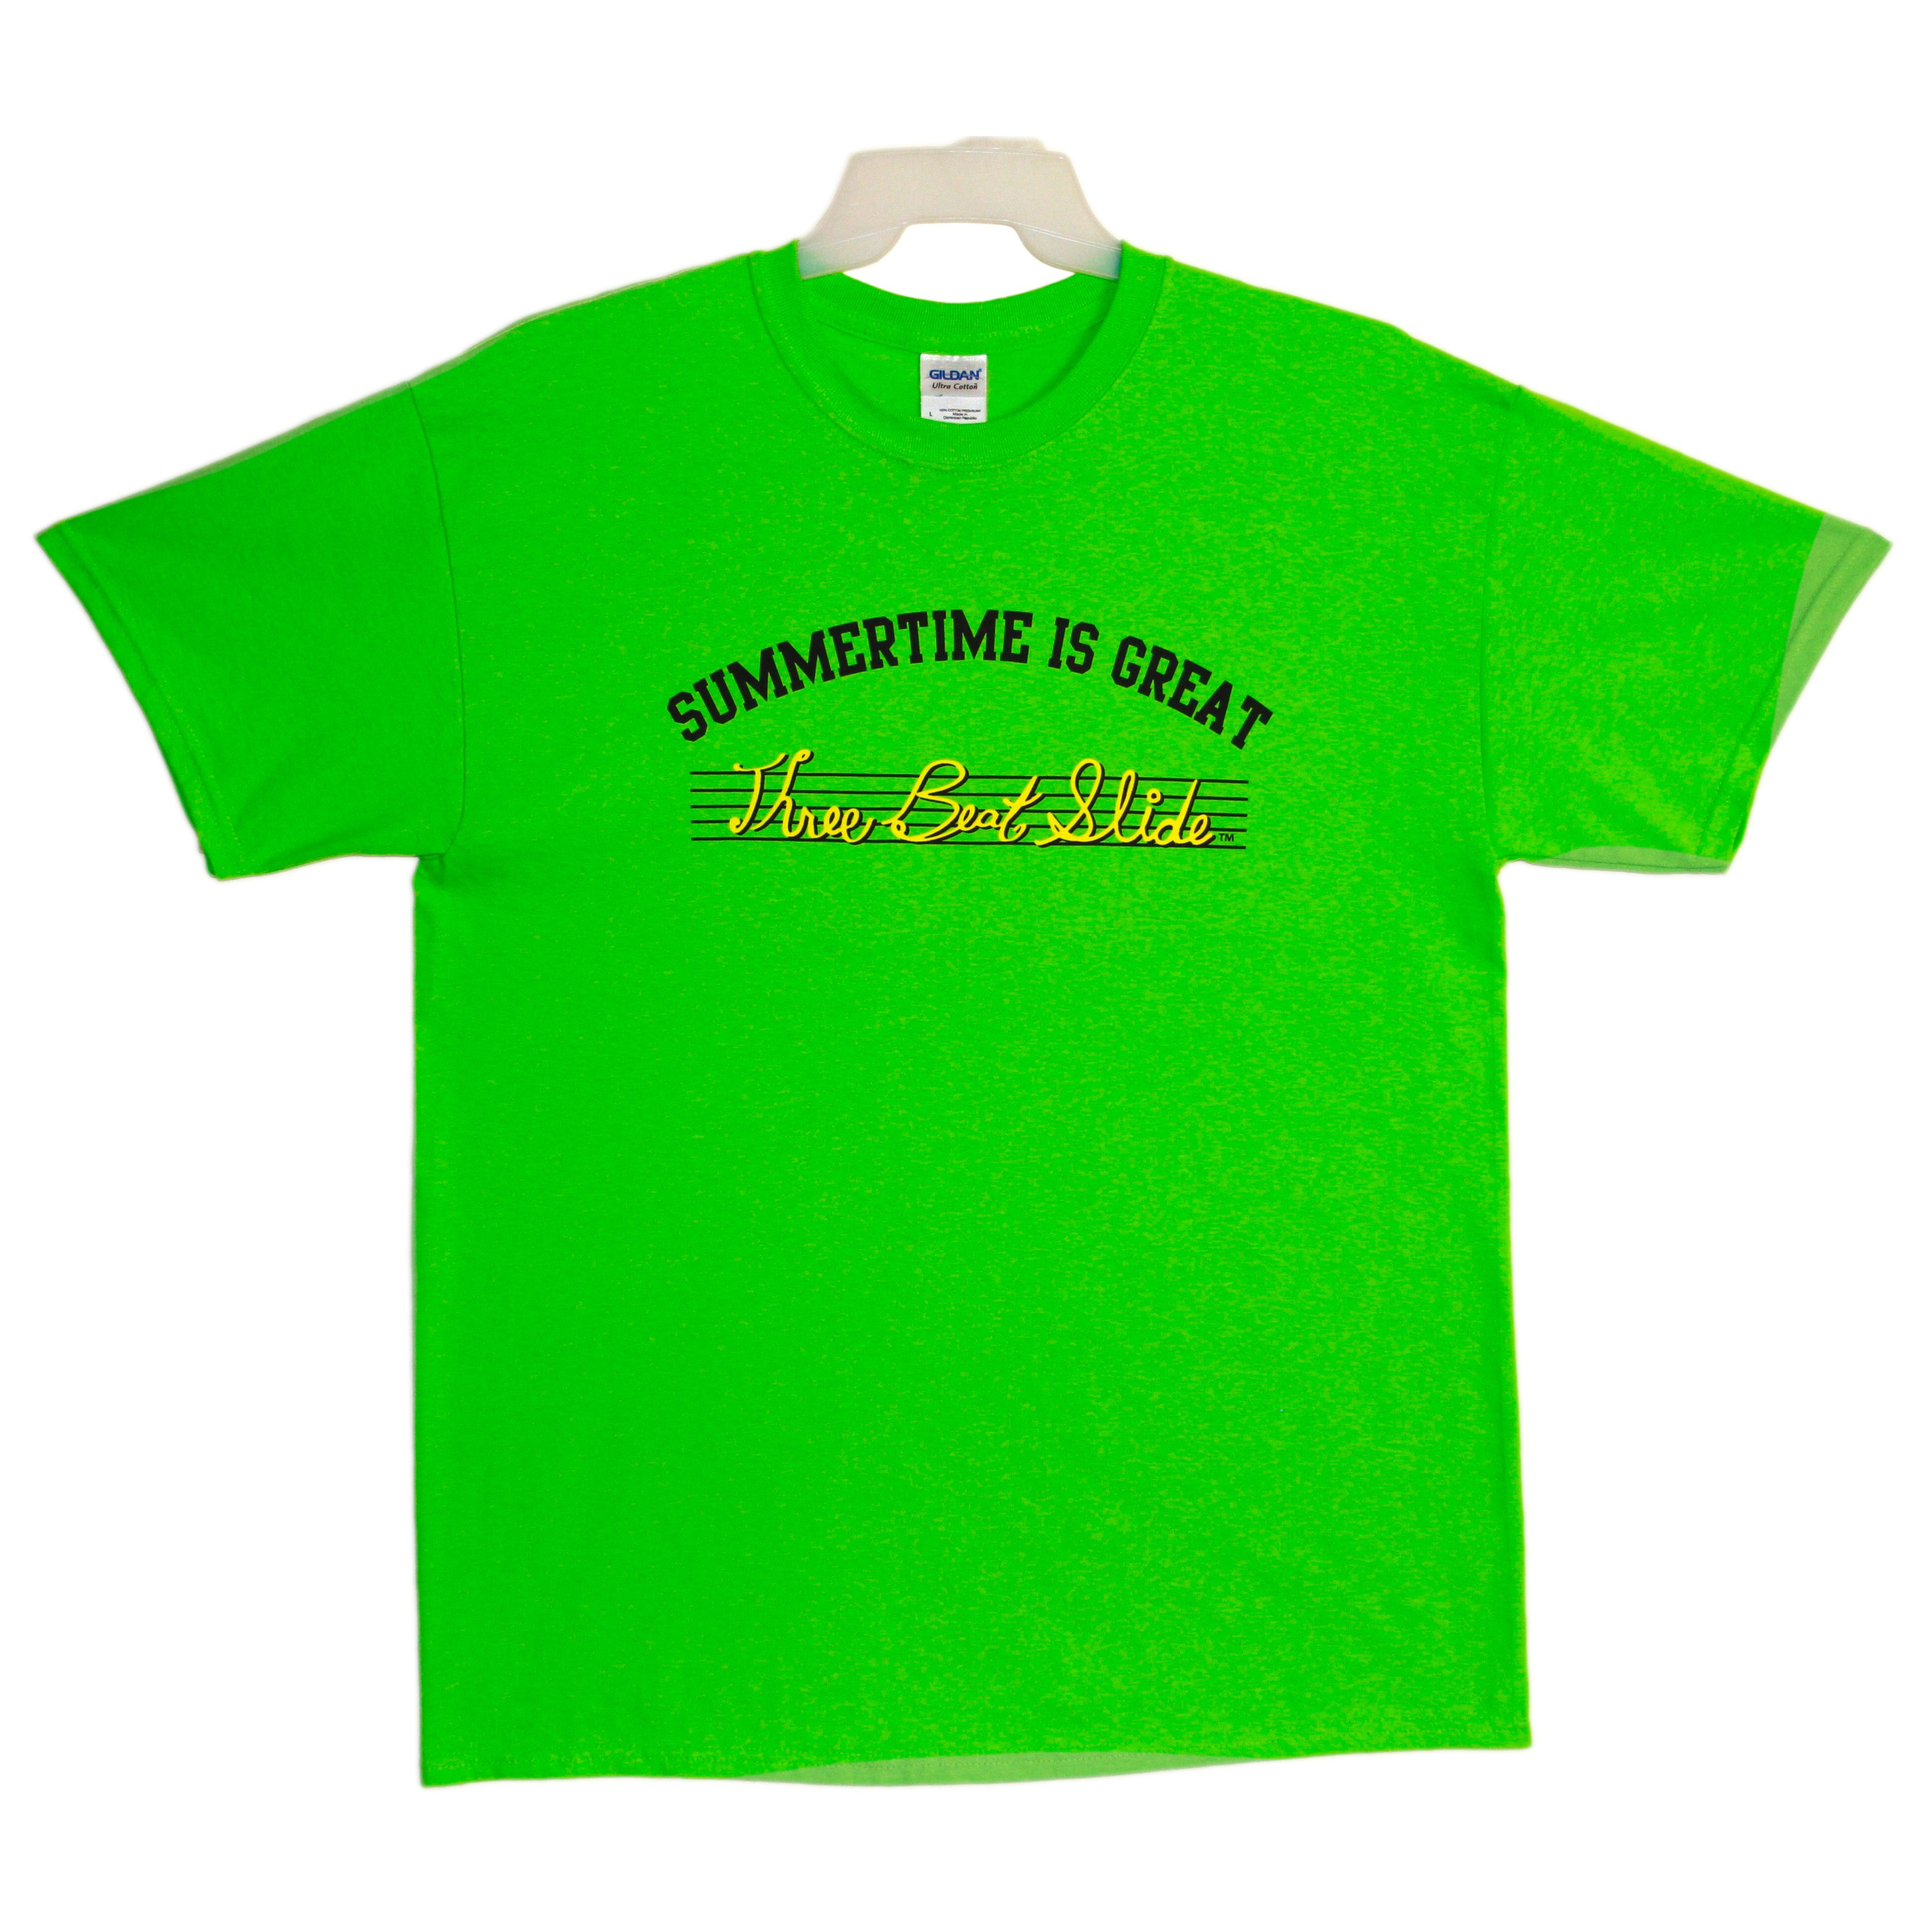 Summertime Is Great Official Lime Green T Shirt Three Beat Slide